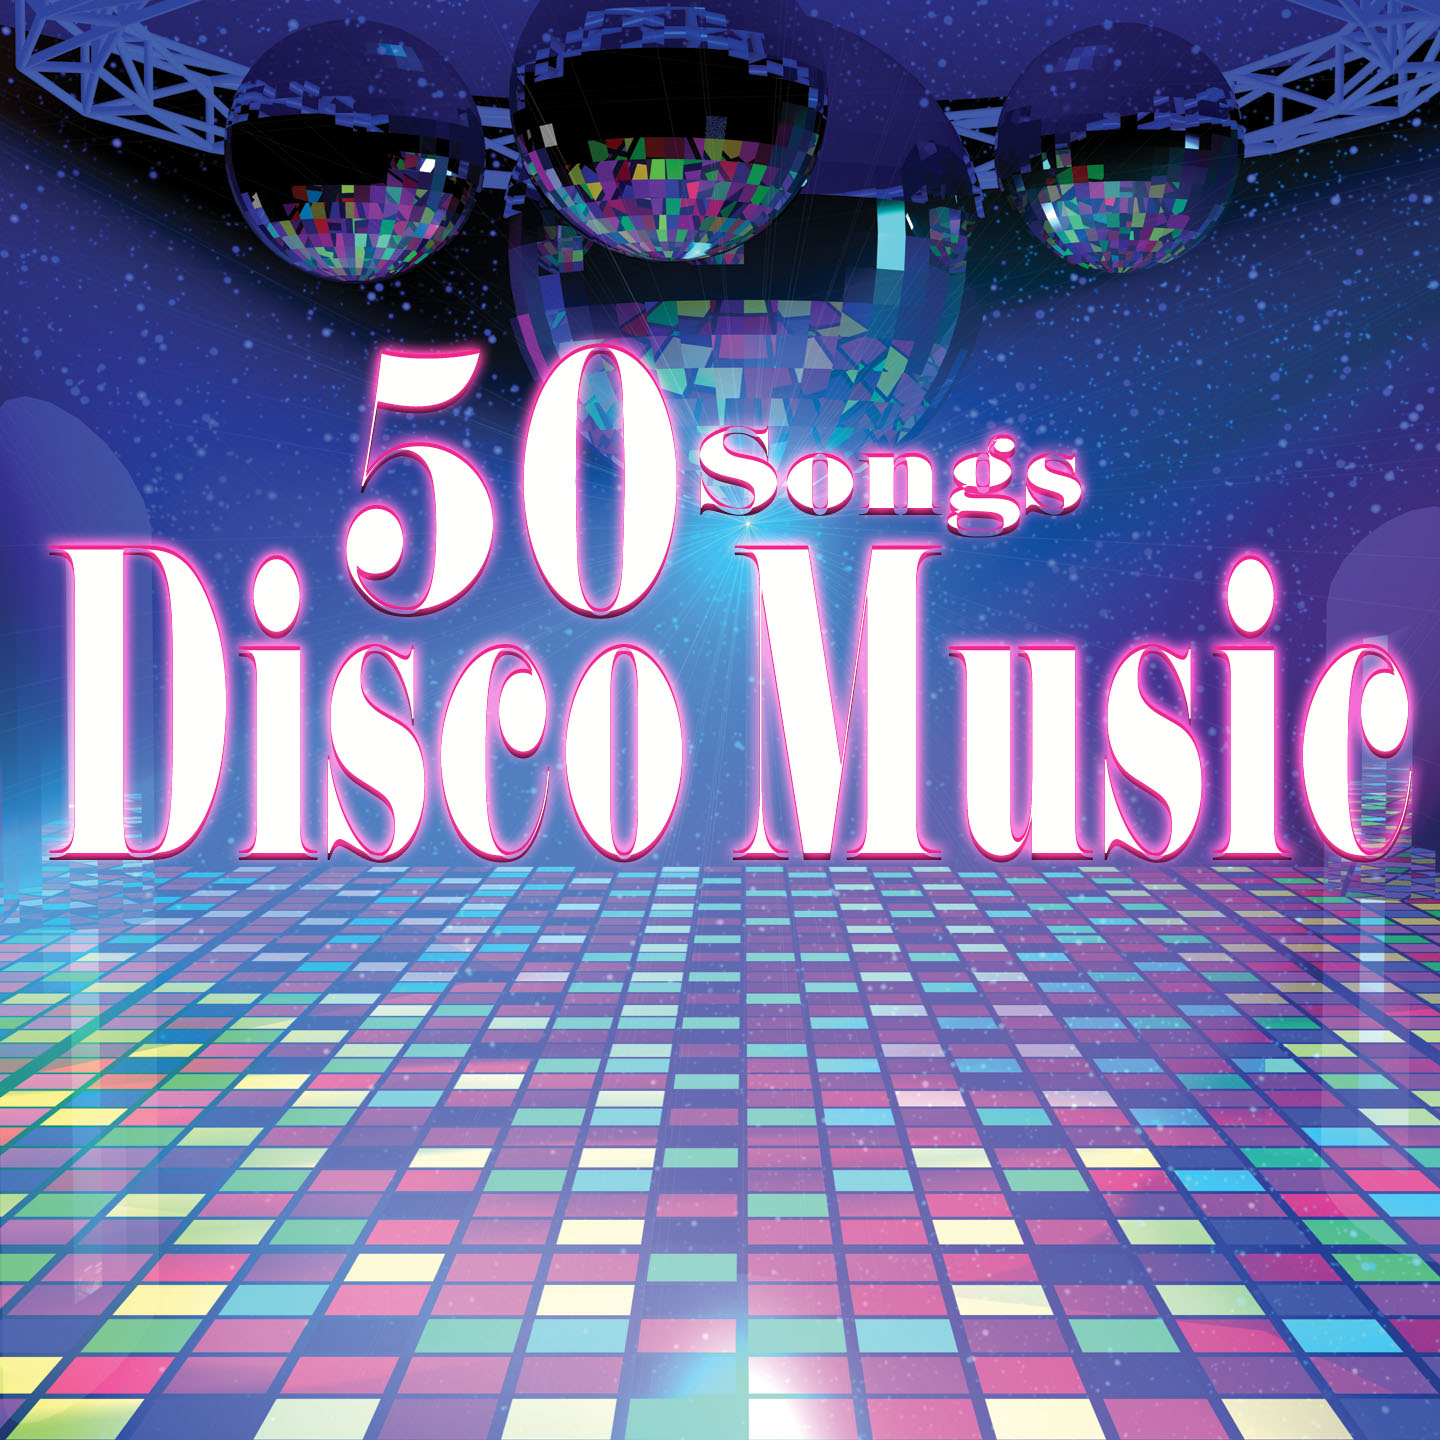 Disco Music - 50 Songs